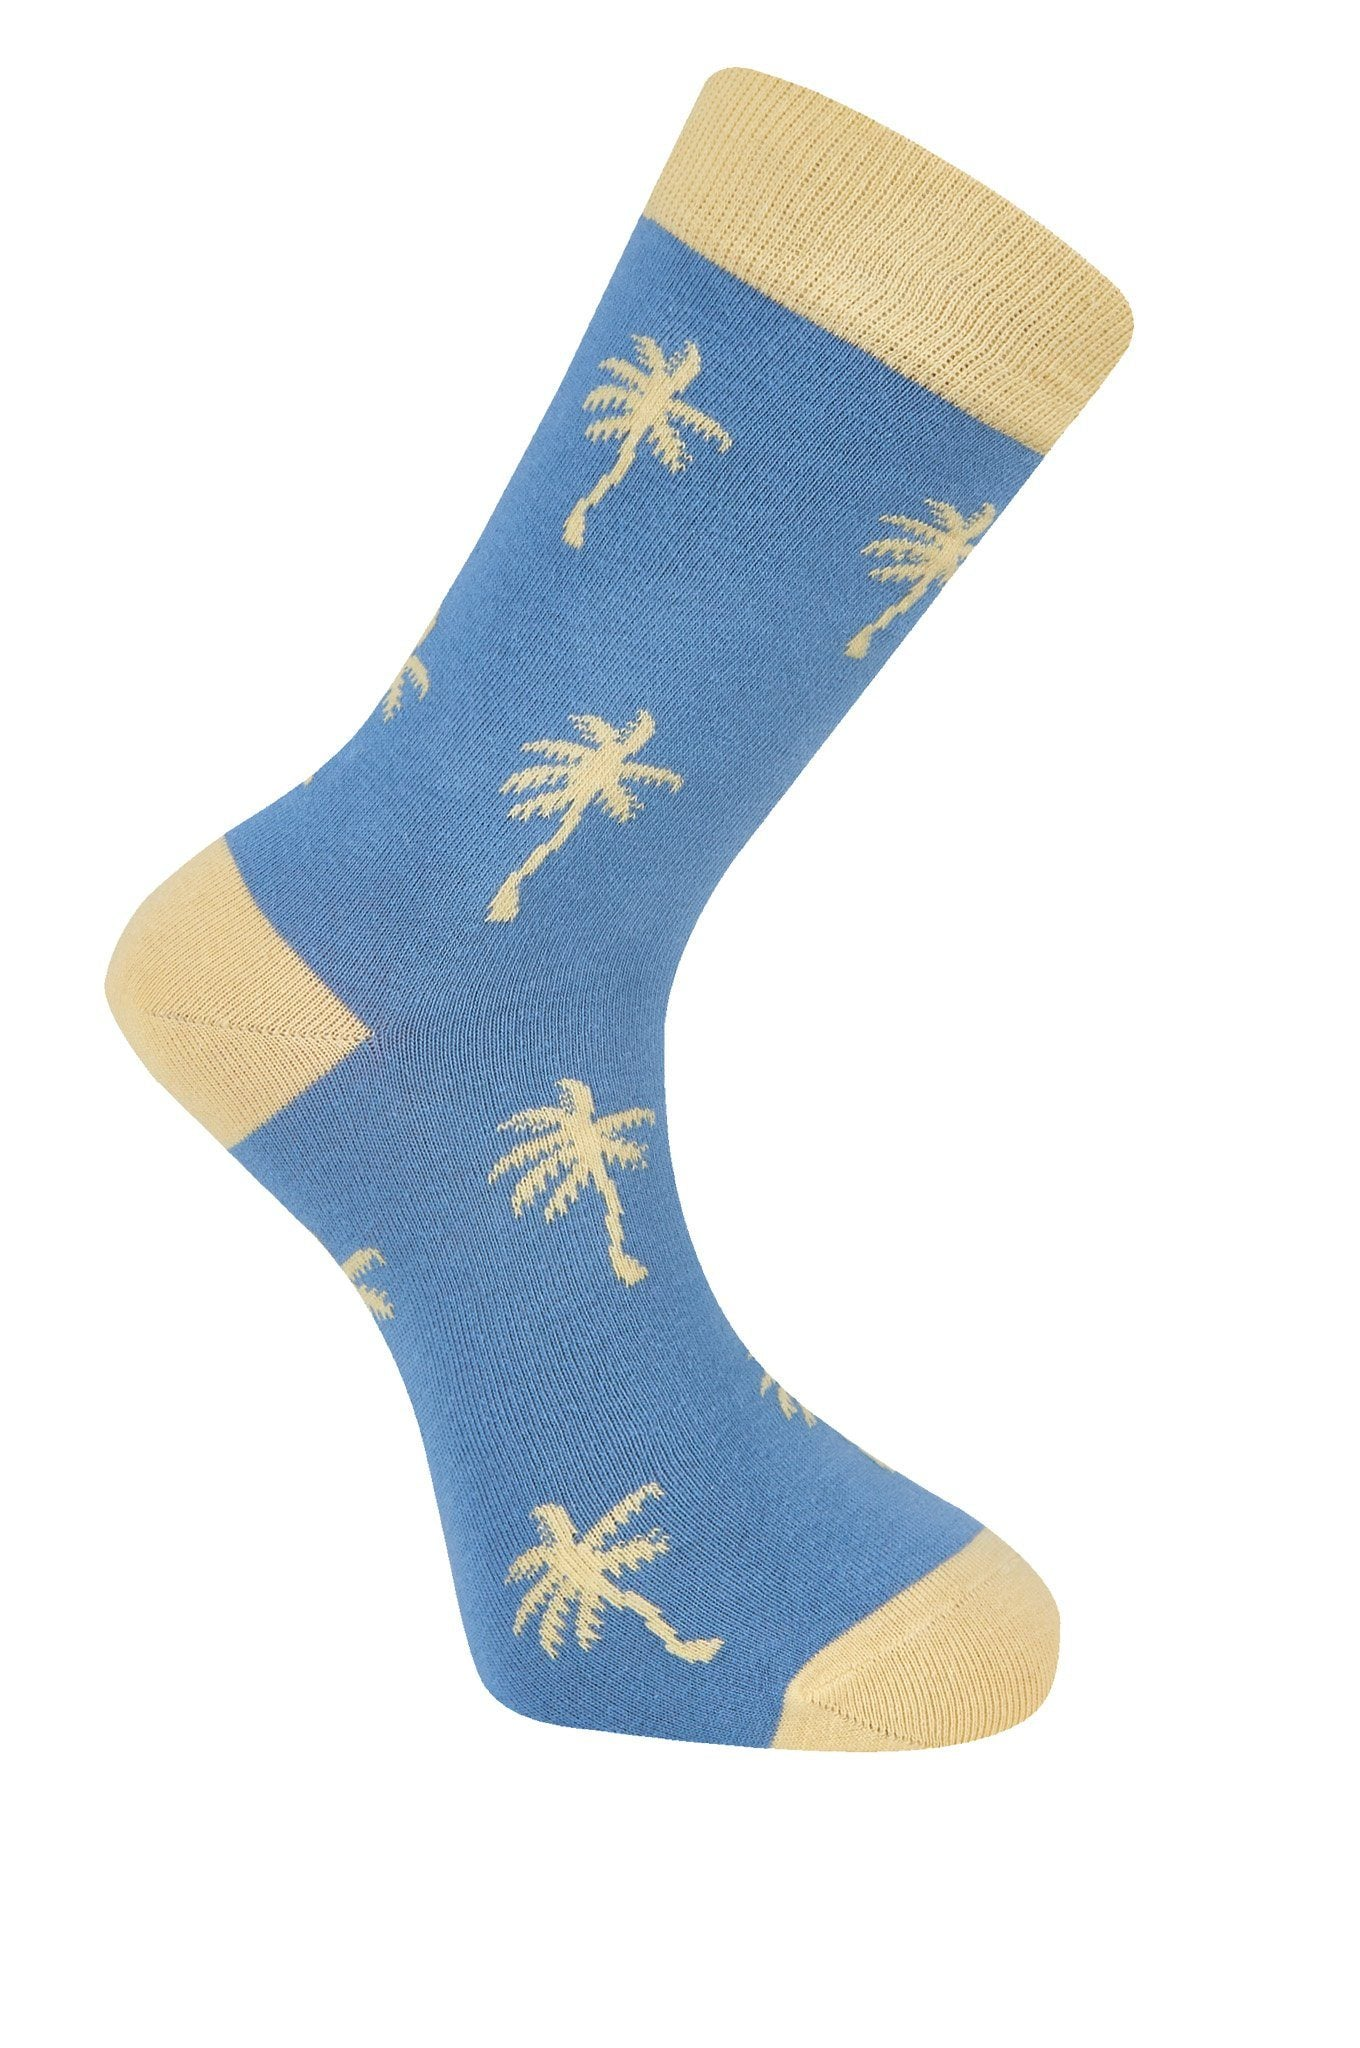 PALM TREE Hydron Organic Cotton Socks - Komodo Fashion